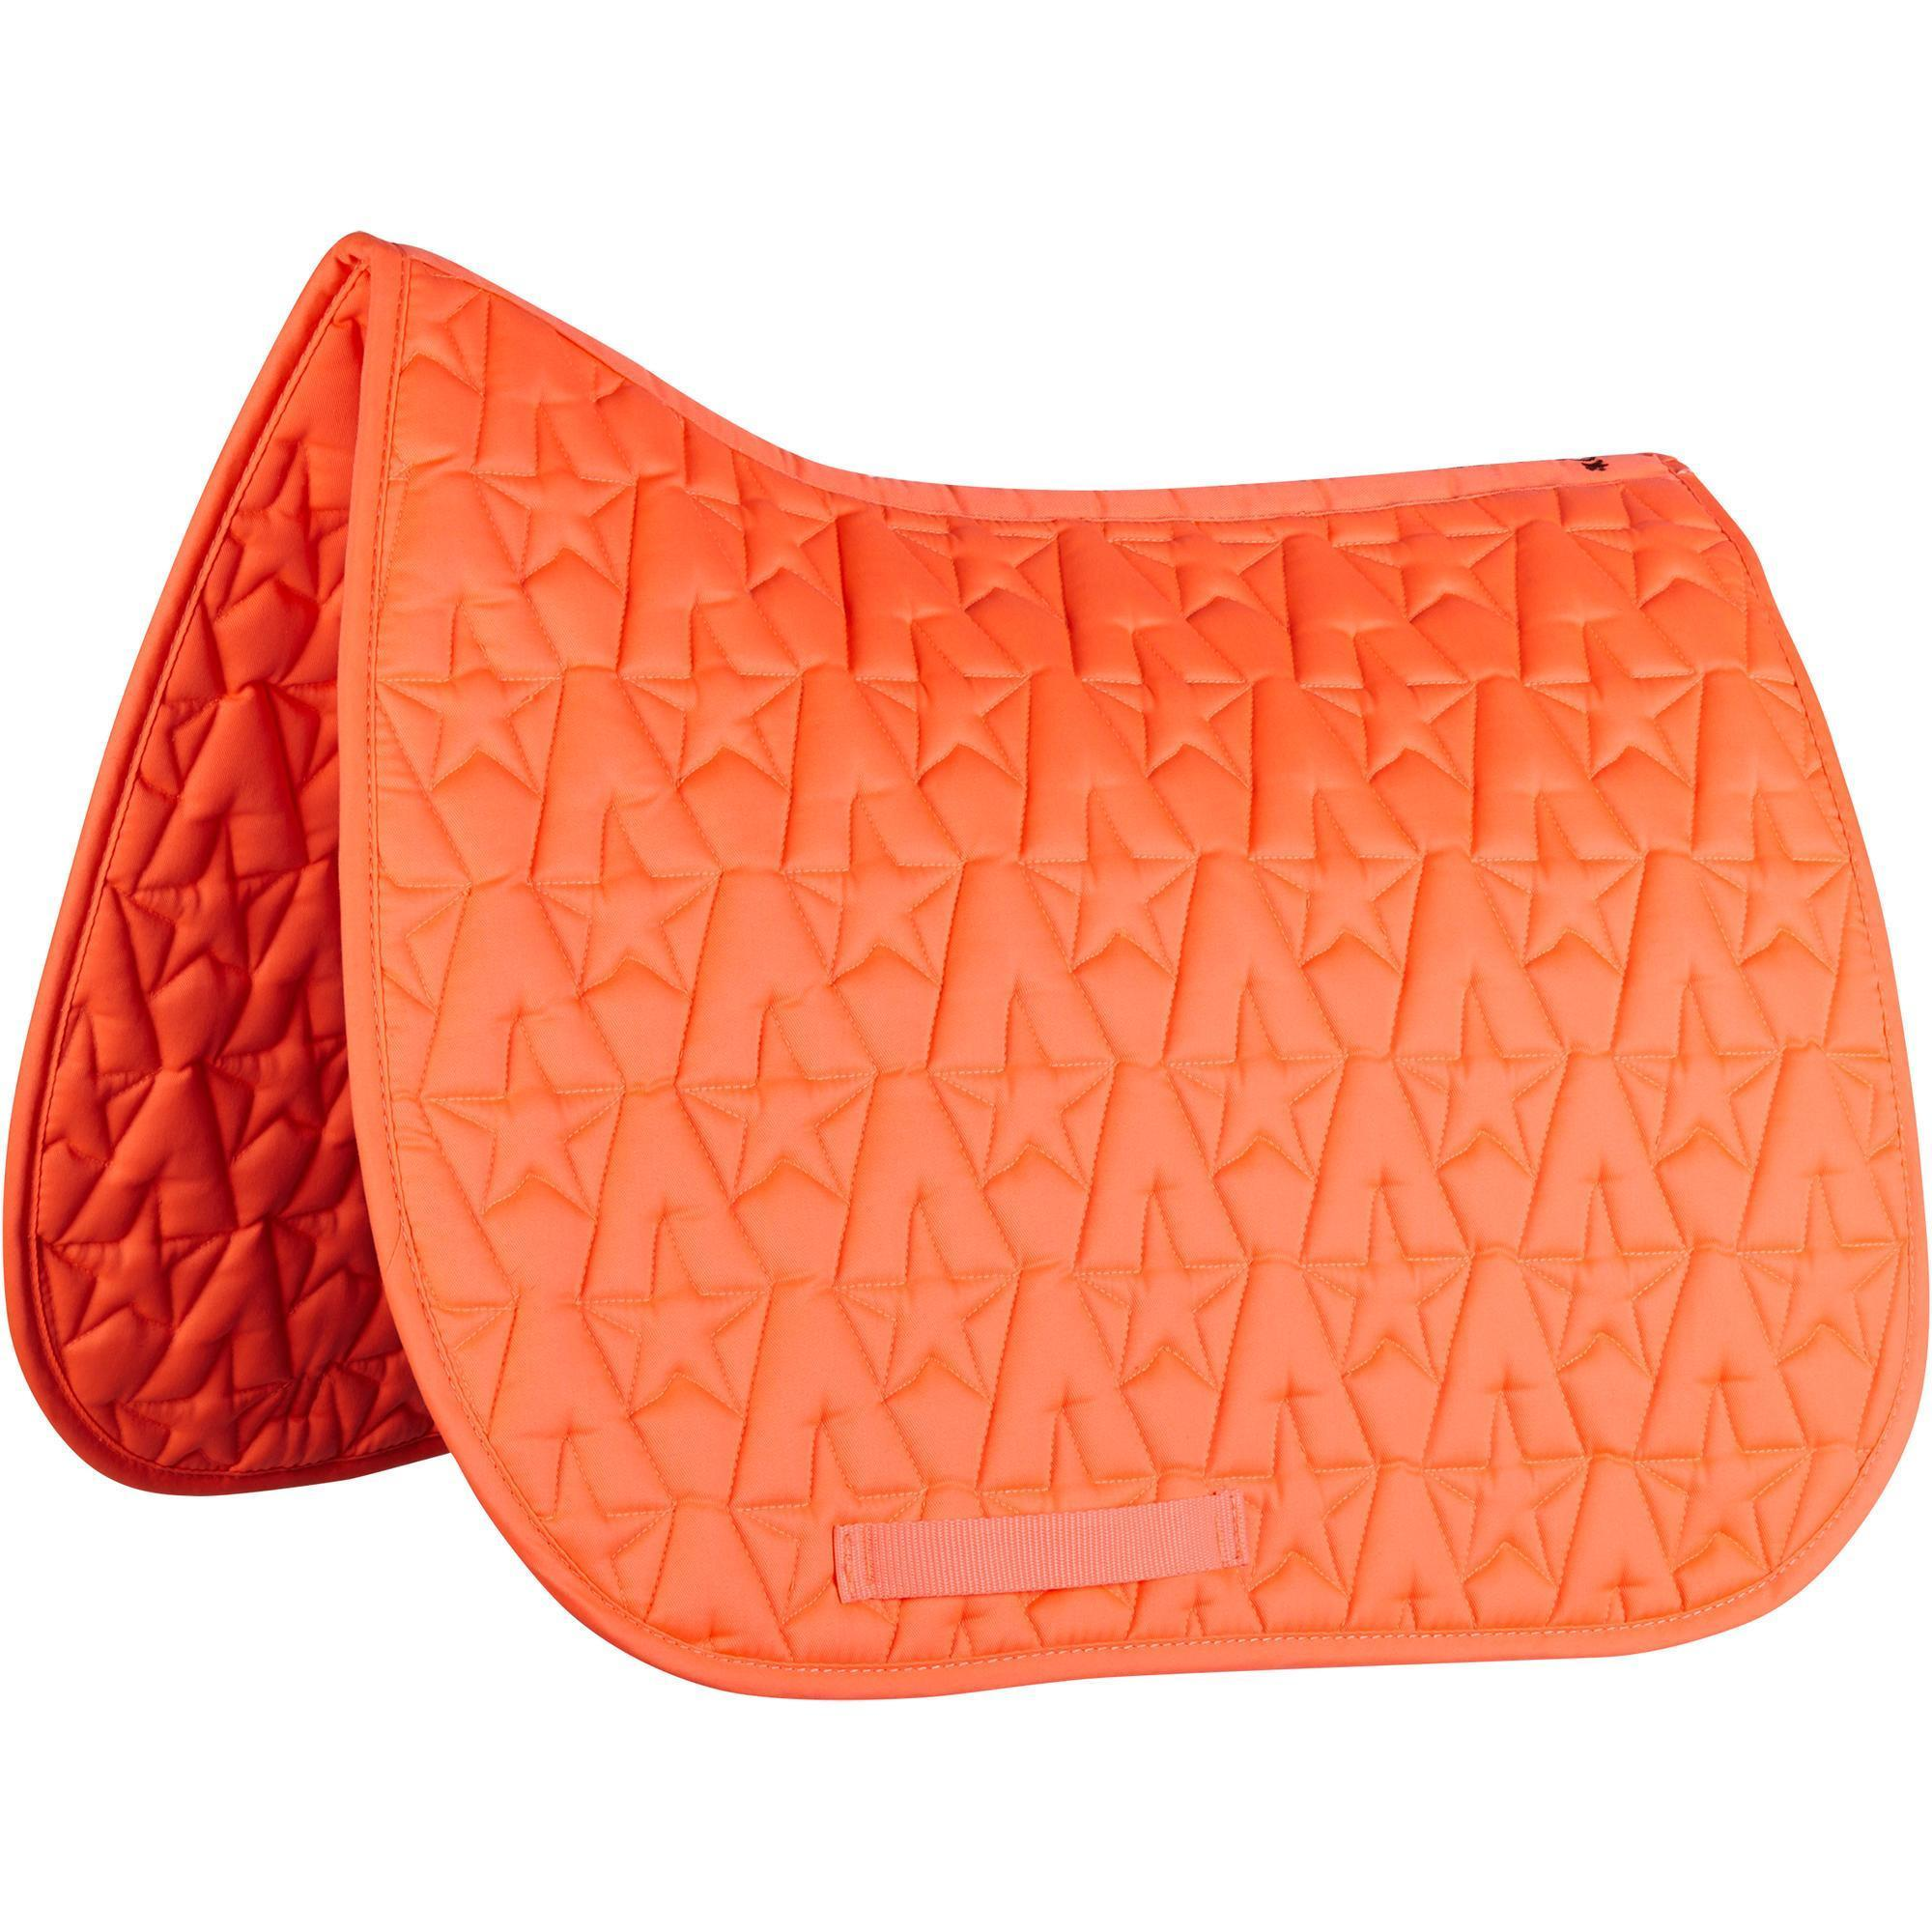 Tapis de selle quitation poney et cheval 100 star orange fluo fouganza - Tapis decathlon equitation ...